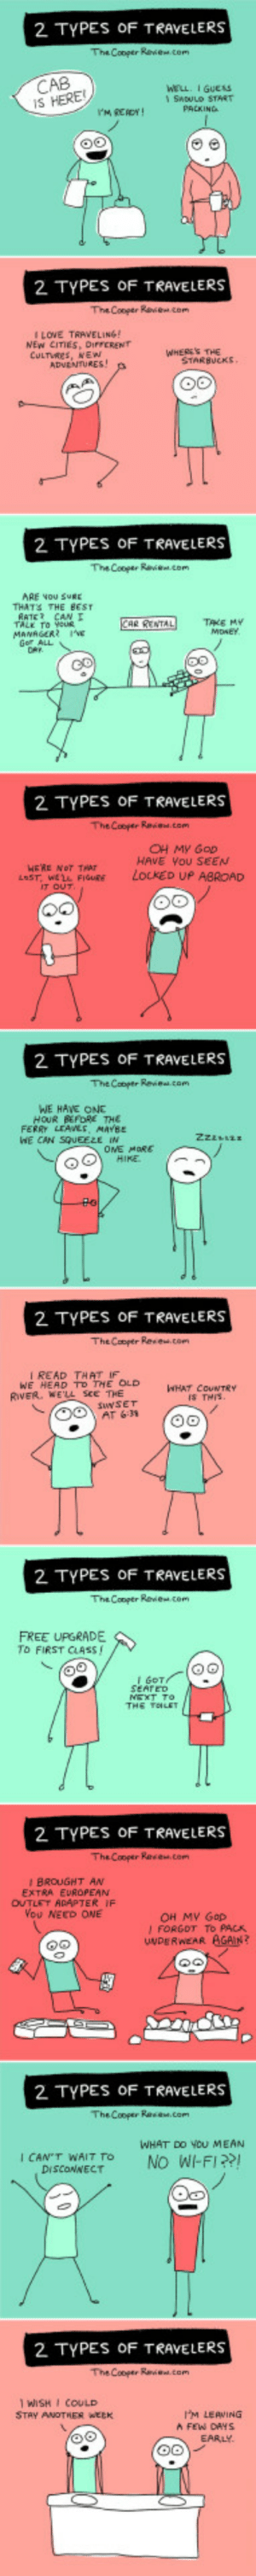 2 Types of Travelers: Which One Are You?: 2 TYPES OF TRAVELERS  TheCoper Raven.com  CAB  S HERE!  WELL IGUEAS  SWOULO START  2 TYPES OF TRAVELERS  I LOVE TRAVELING!  NEW CITIES DirrCRENT  CULTVRES, NEW  WHERES THE  STARBUCKS  2 TYPES OF TRAVELERS  ARE Nou SURE  THAT THE BEST  TAKE MY  2 TYPES OF TRAVELERS  OH My Gop  HAVE YoU SEEN  LOCKED UP ABROAD  HERE NOT THAT  LaST, WELL FIG  2 TYPES OF TRAVELERS  WE HAVE ONE  FERRY LEAW, MAB  WE CAN  OME MORE  2 TYPES OF TRAVELERS  I READ THAT IF  WE HEAD TO THE OLD  RIVER, WELL Sce THE  COUNTRY  IS THIS  2 TYPES OF TRAVELERS  FREE UPGRADE  TO FIRST CLASS  2 TYPES OF TRAVELERS  BROUGHT AN  EXTRA EUROPEAN  OUTLET ACAPTER IF  ou NEED ONE  OH MV Gop  I FORGDT To PAcs  UNDERWEAR AGAİp?  2, TYPES OF TRAVELERS  WHAT DO YOU MEAN  ADOWAECTNO WIFI?  2 TYPES OF TRAVELERS  WISHI COULD  STAY ANOTHER wEEK  IM LEAVING  EARLY. 2 Types of Travelers: Which One Are You?